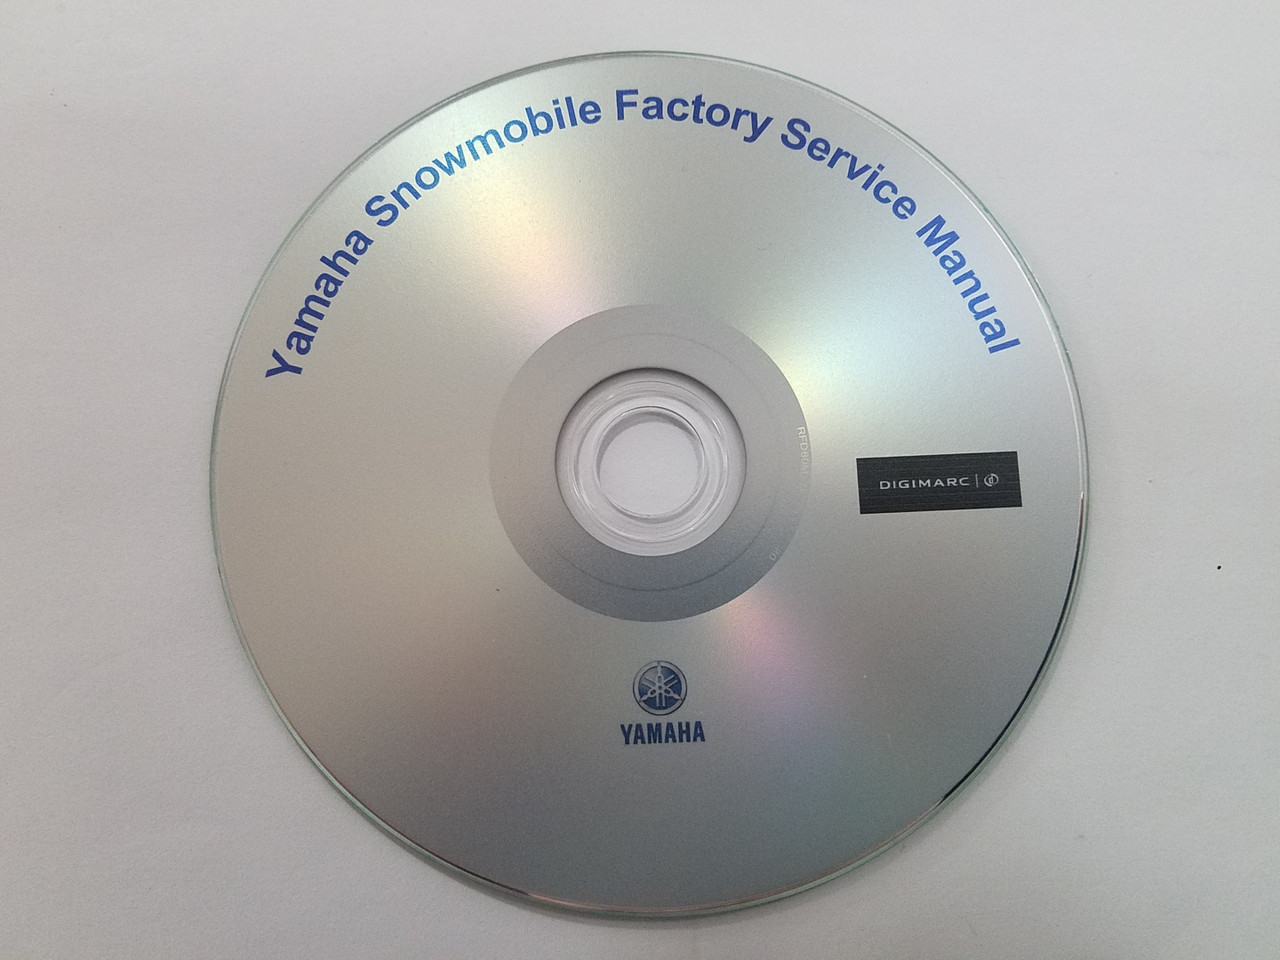 Yamaha Snowmobile Service Manuals on CD by Year